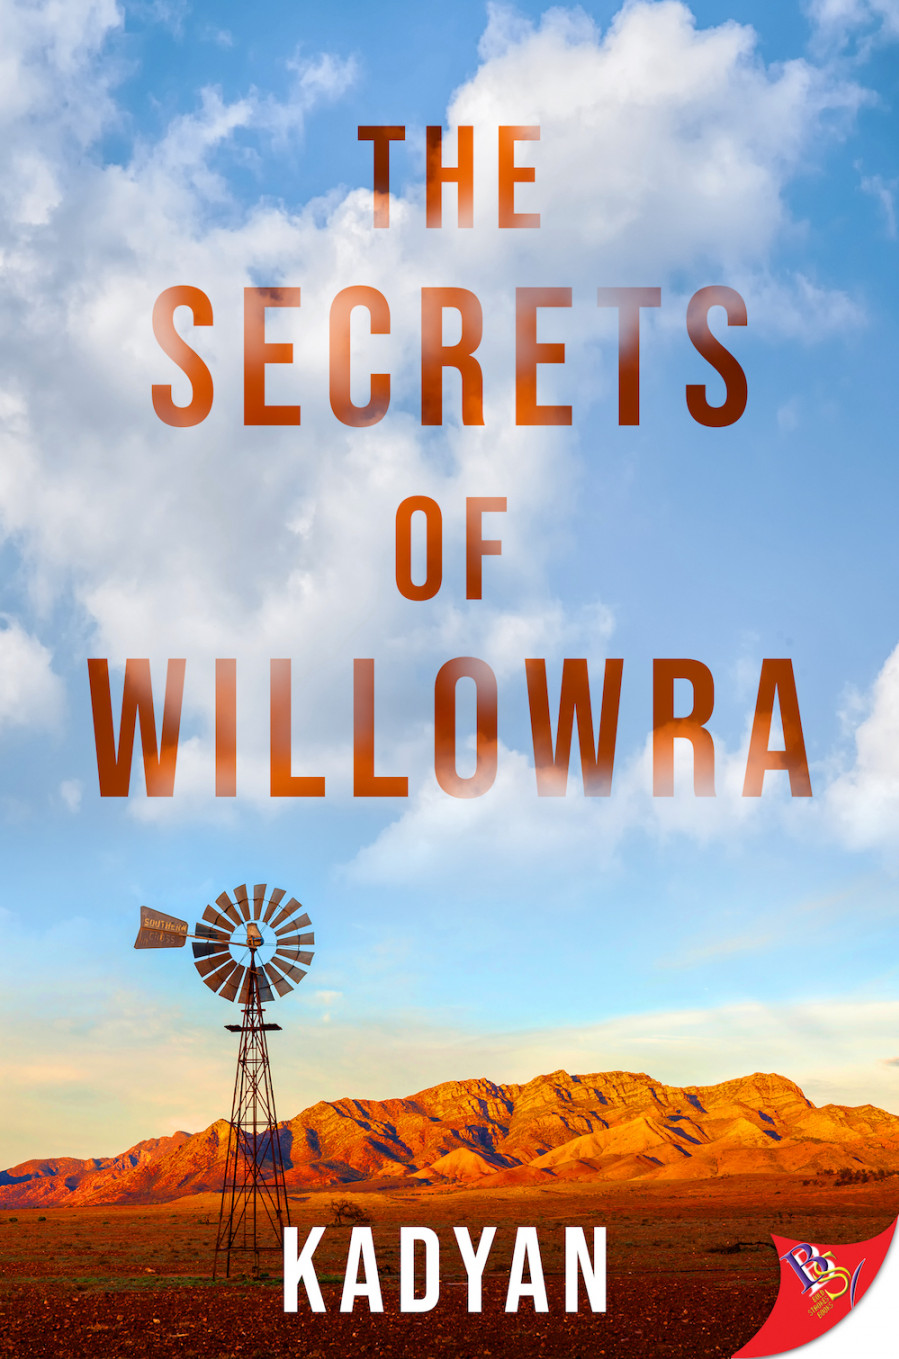 The Secrets of Willowra